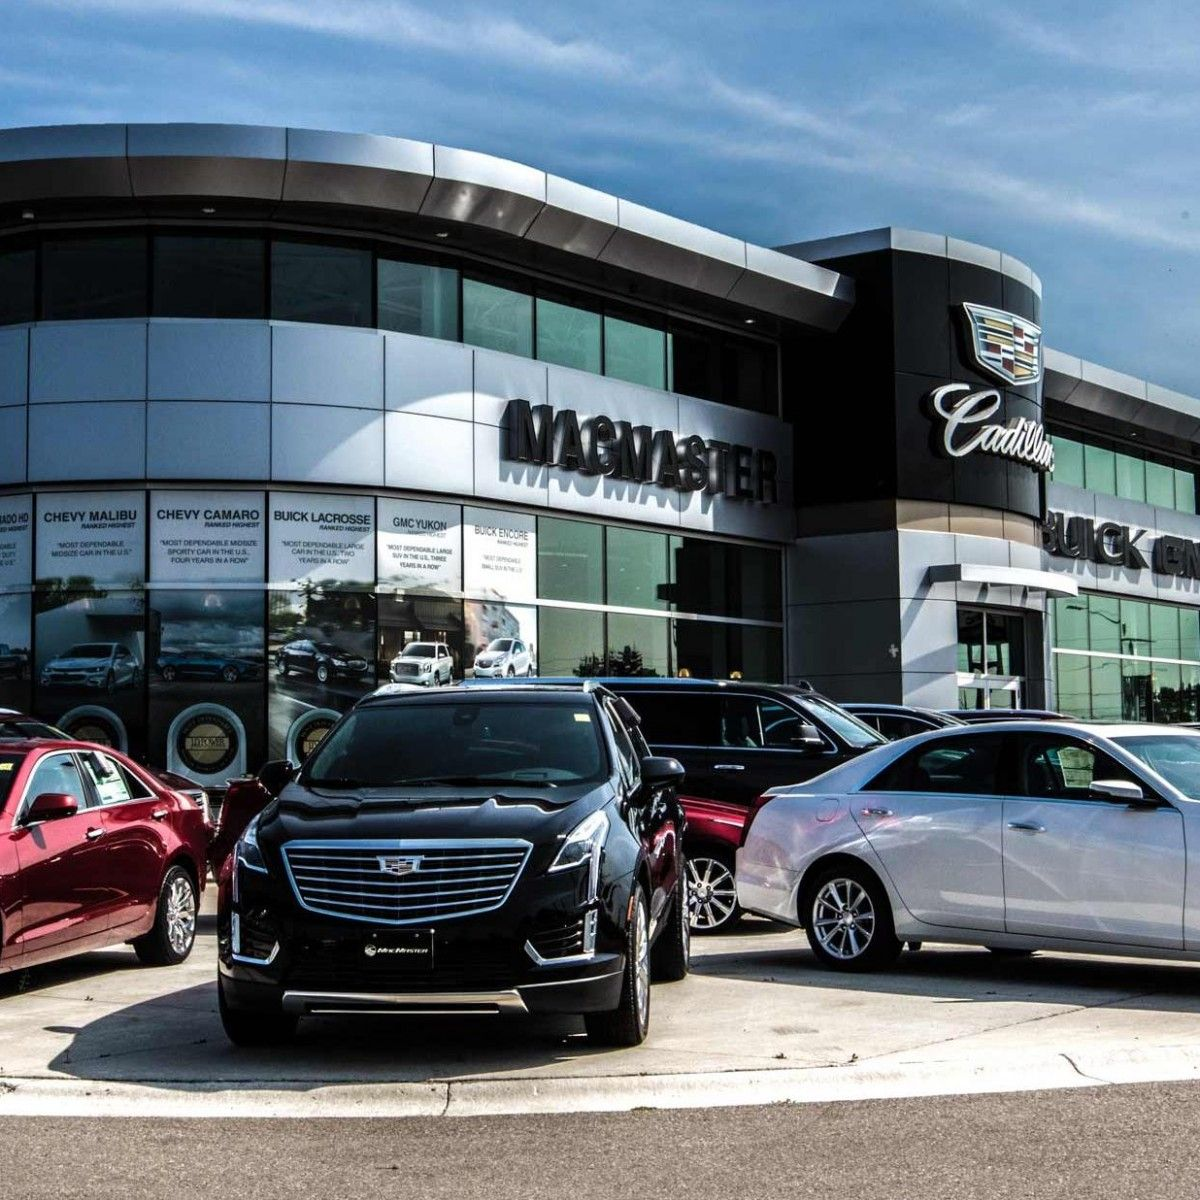 Luxury Used Cars for Sale London Ontario in 2020 Cars